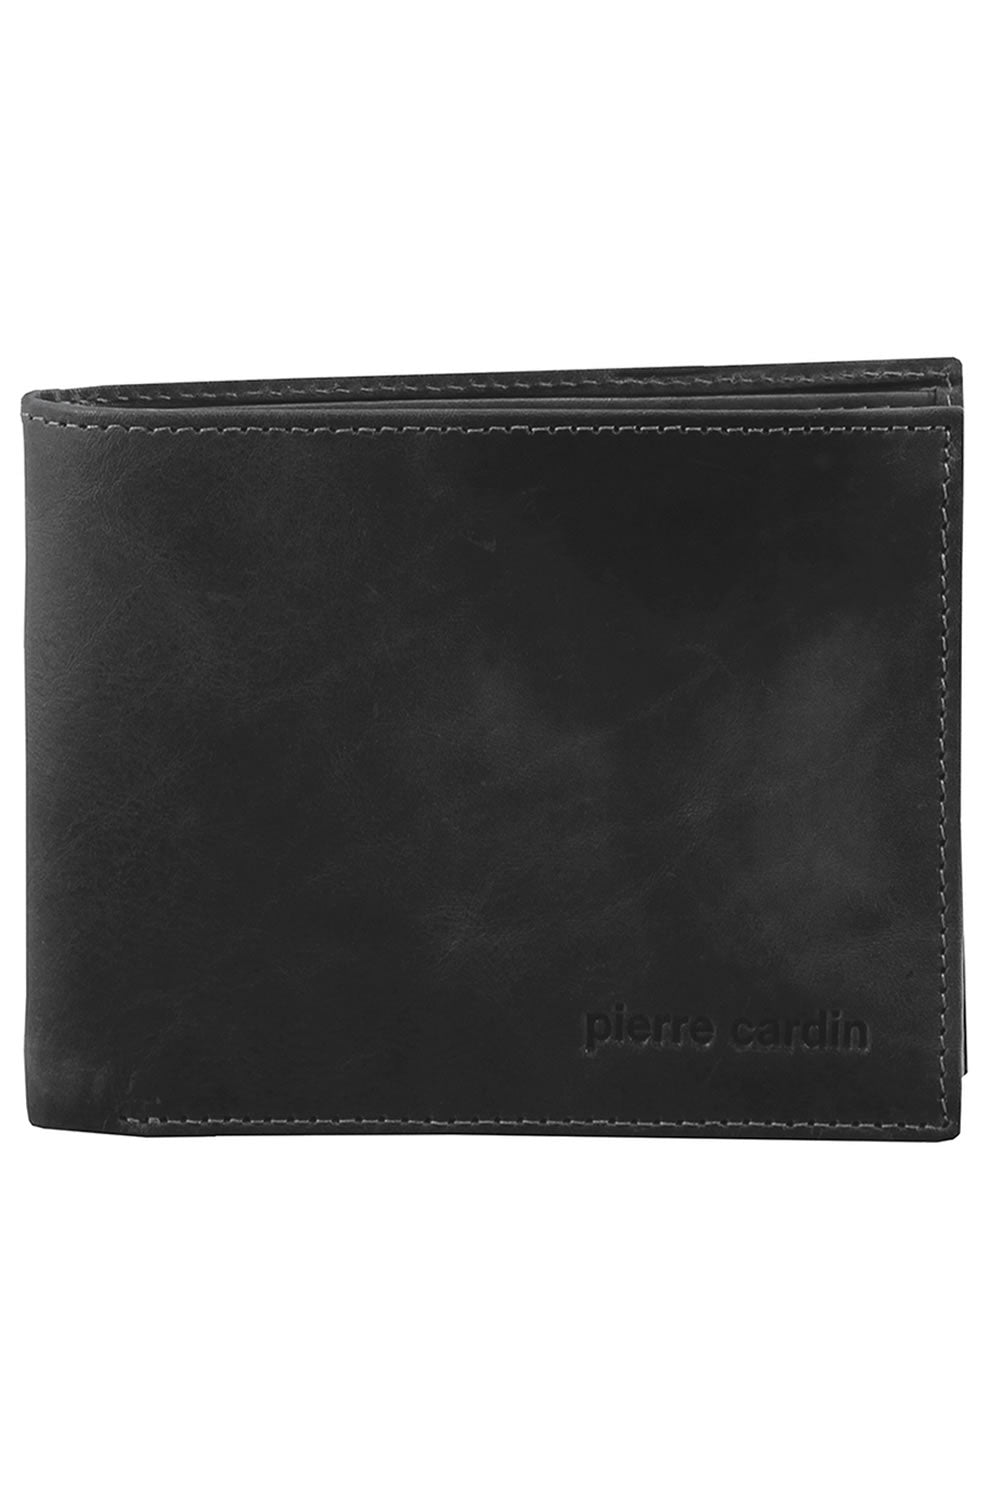 Pierre Cardin RFID Leather Wallet